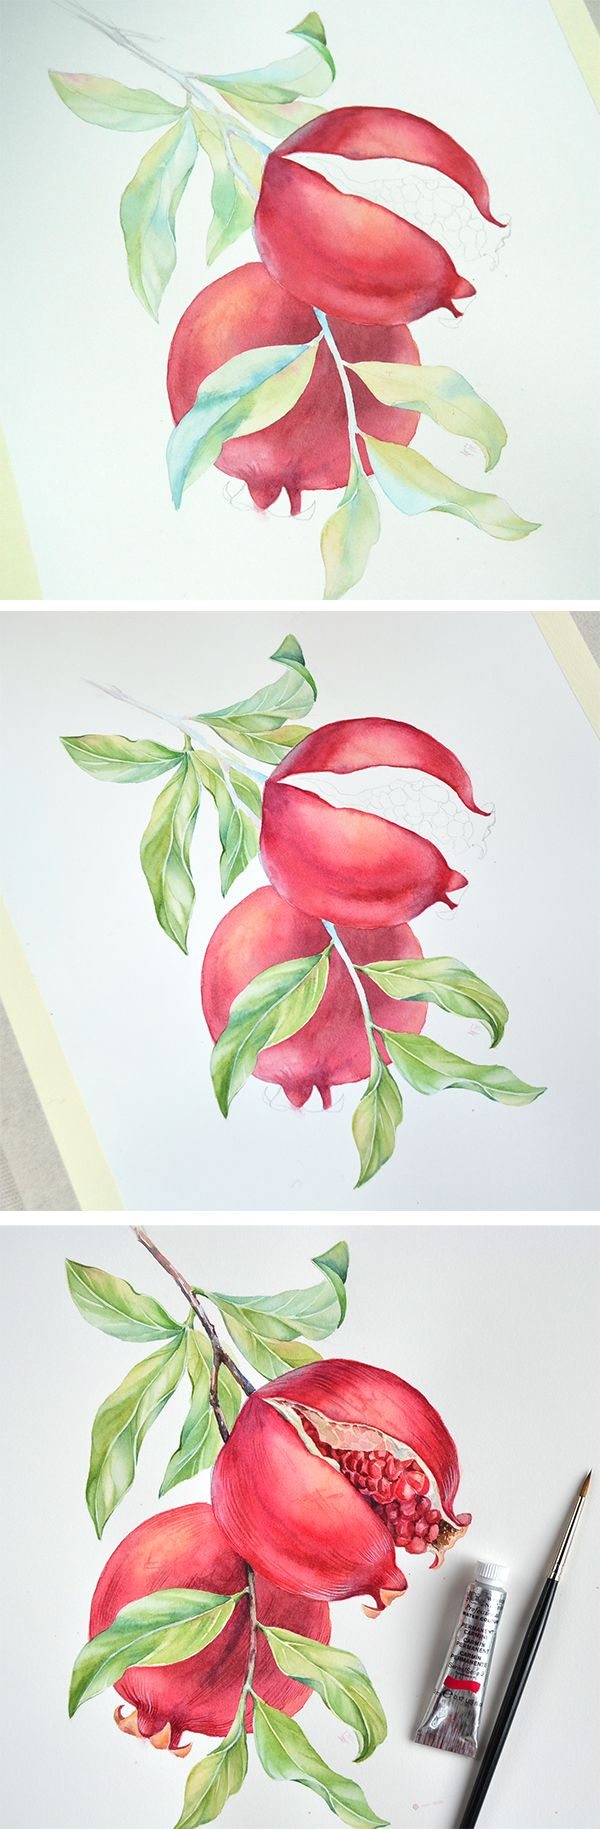 Pomegranate botanical illustration- watercolor tutorial by Kateryna Savchenko